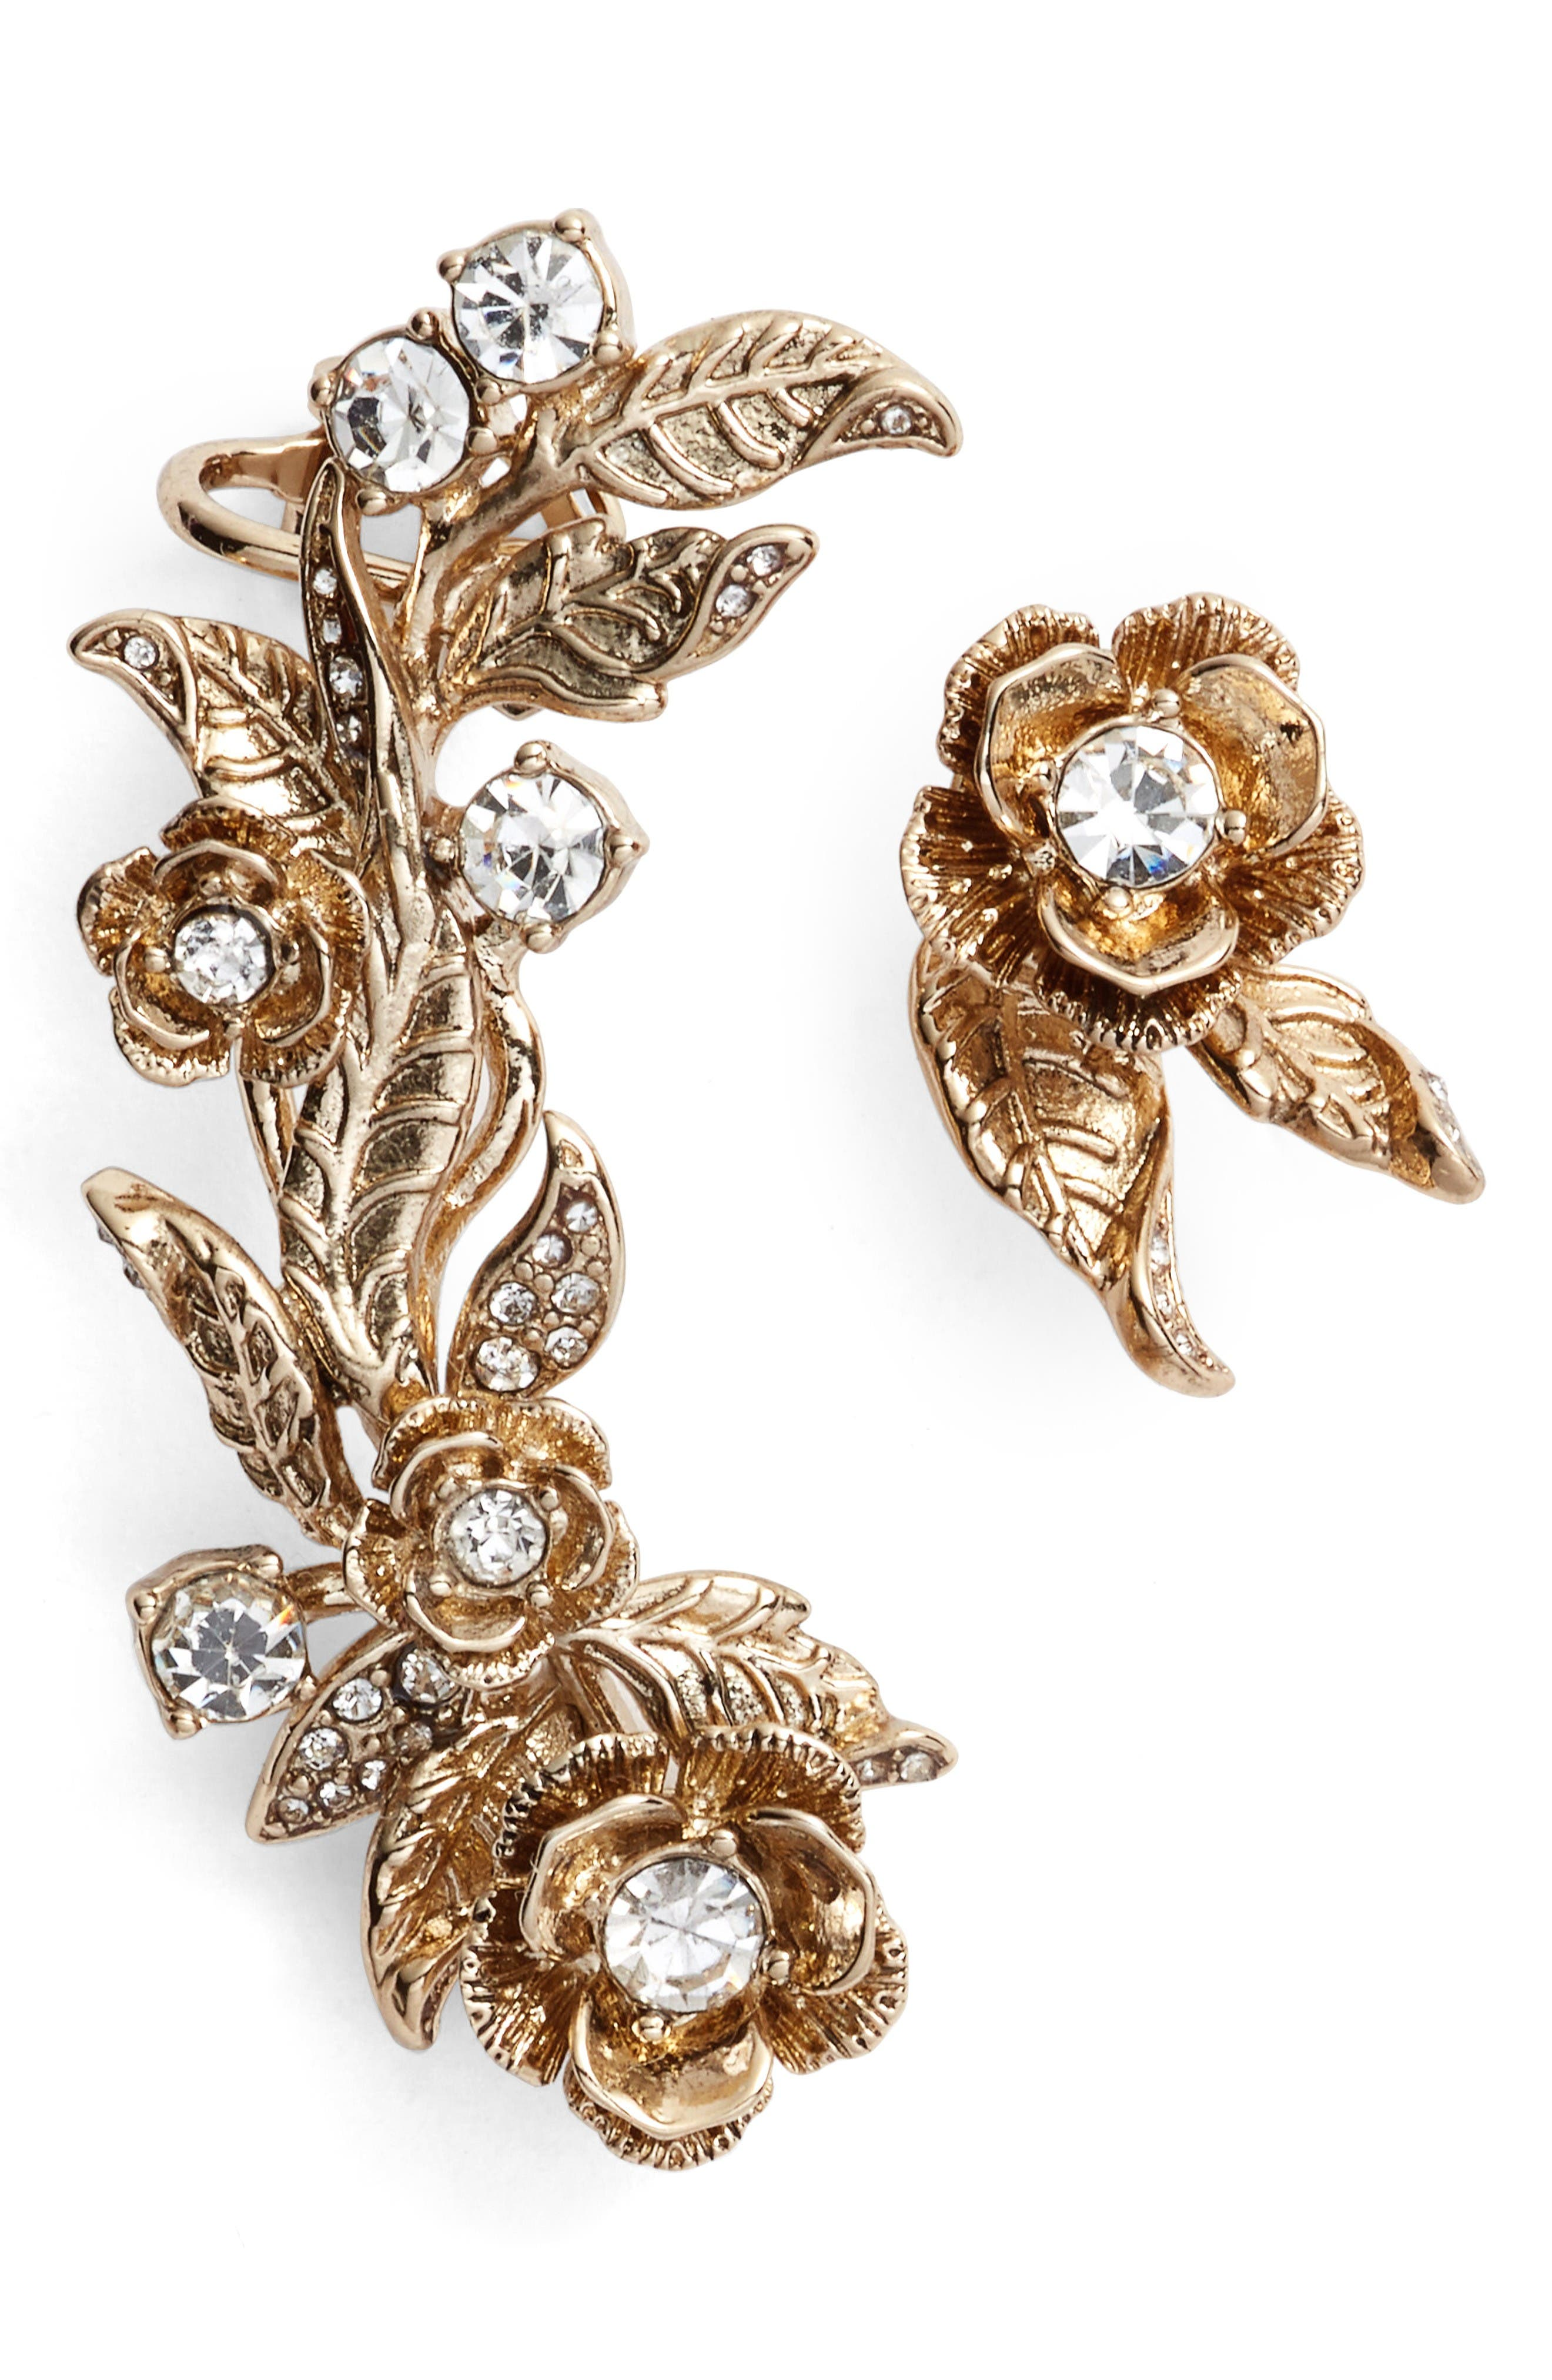 Main Image - Marchesa Mismatched Earrings Ear Crawler & Stud